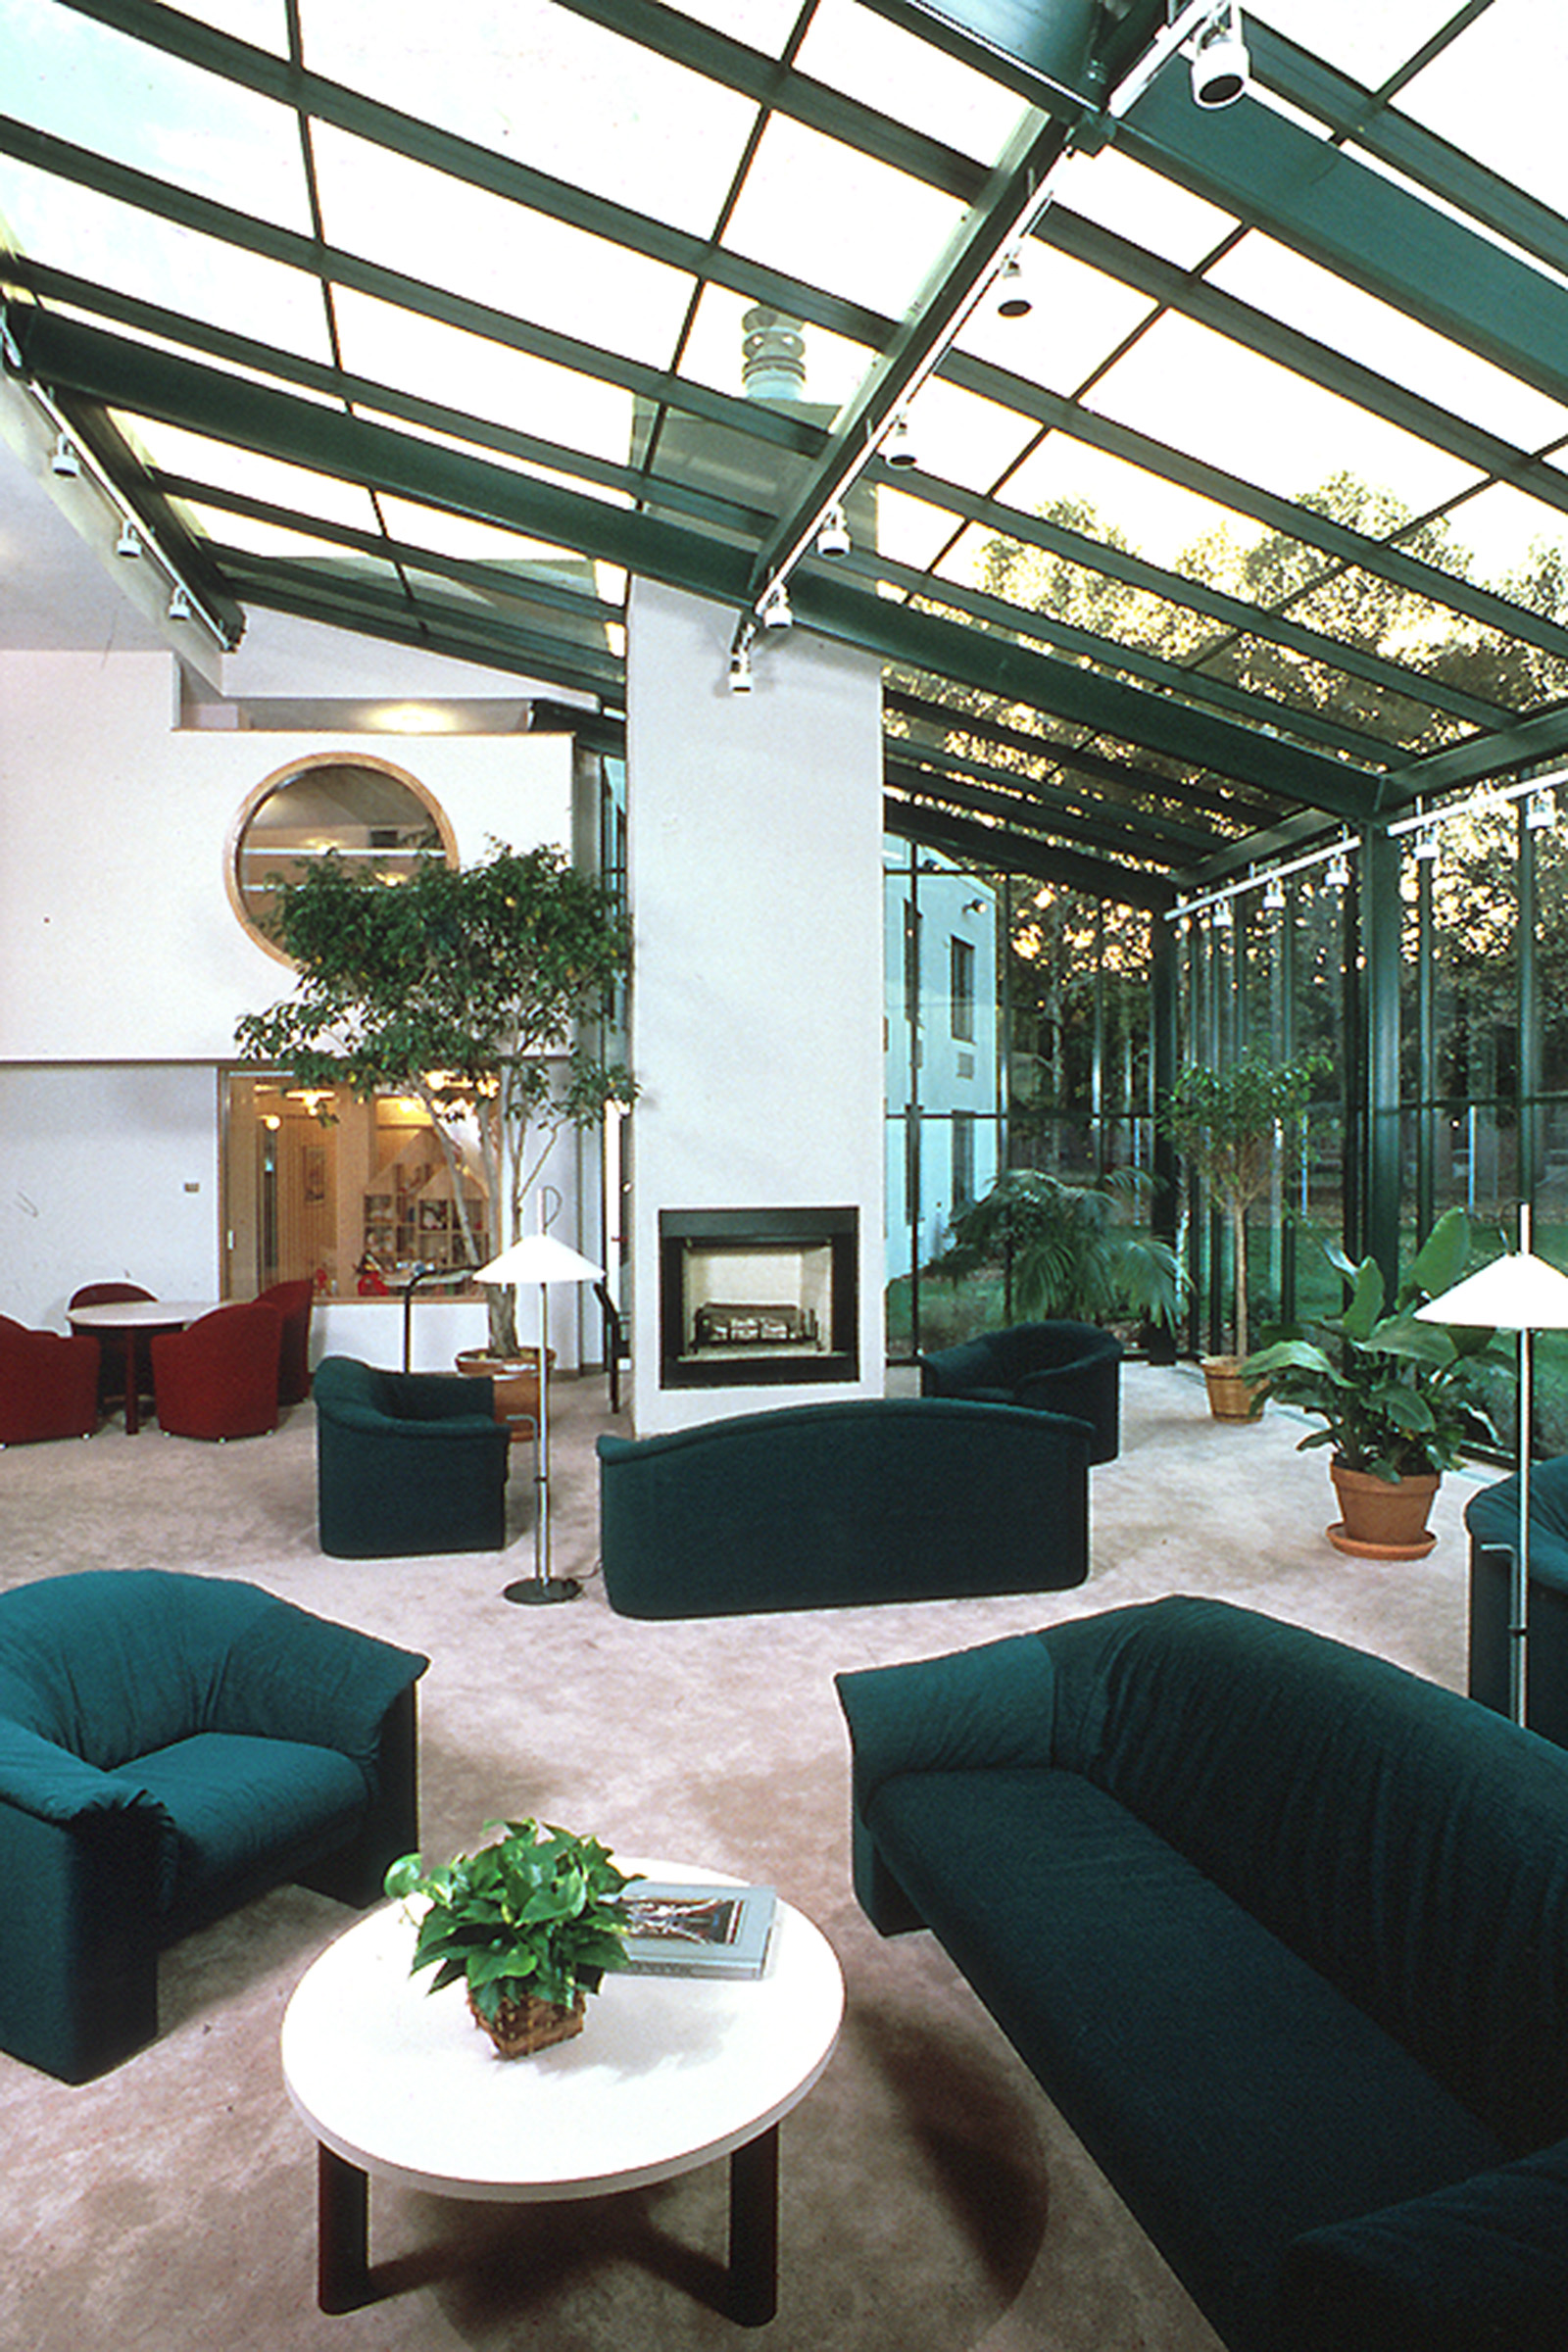 Interior View 1 - Greenhouse.jpg